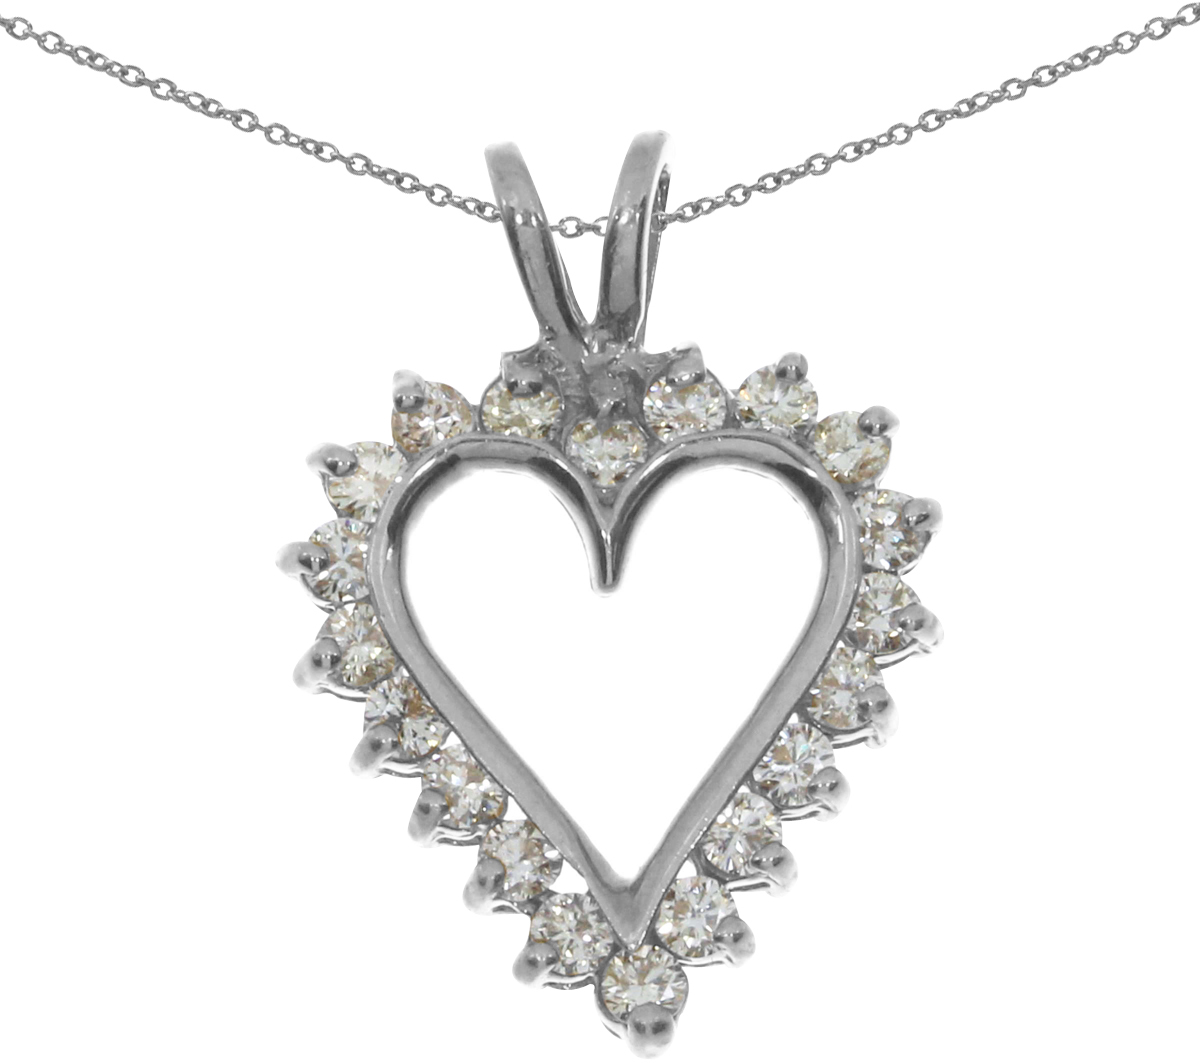 14K White Gold Diamond Heart Pendant (Chain NOT included) (CM-RM556PW)